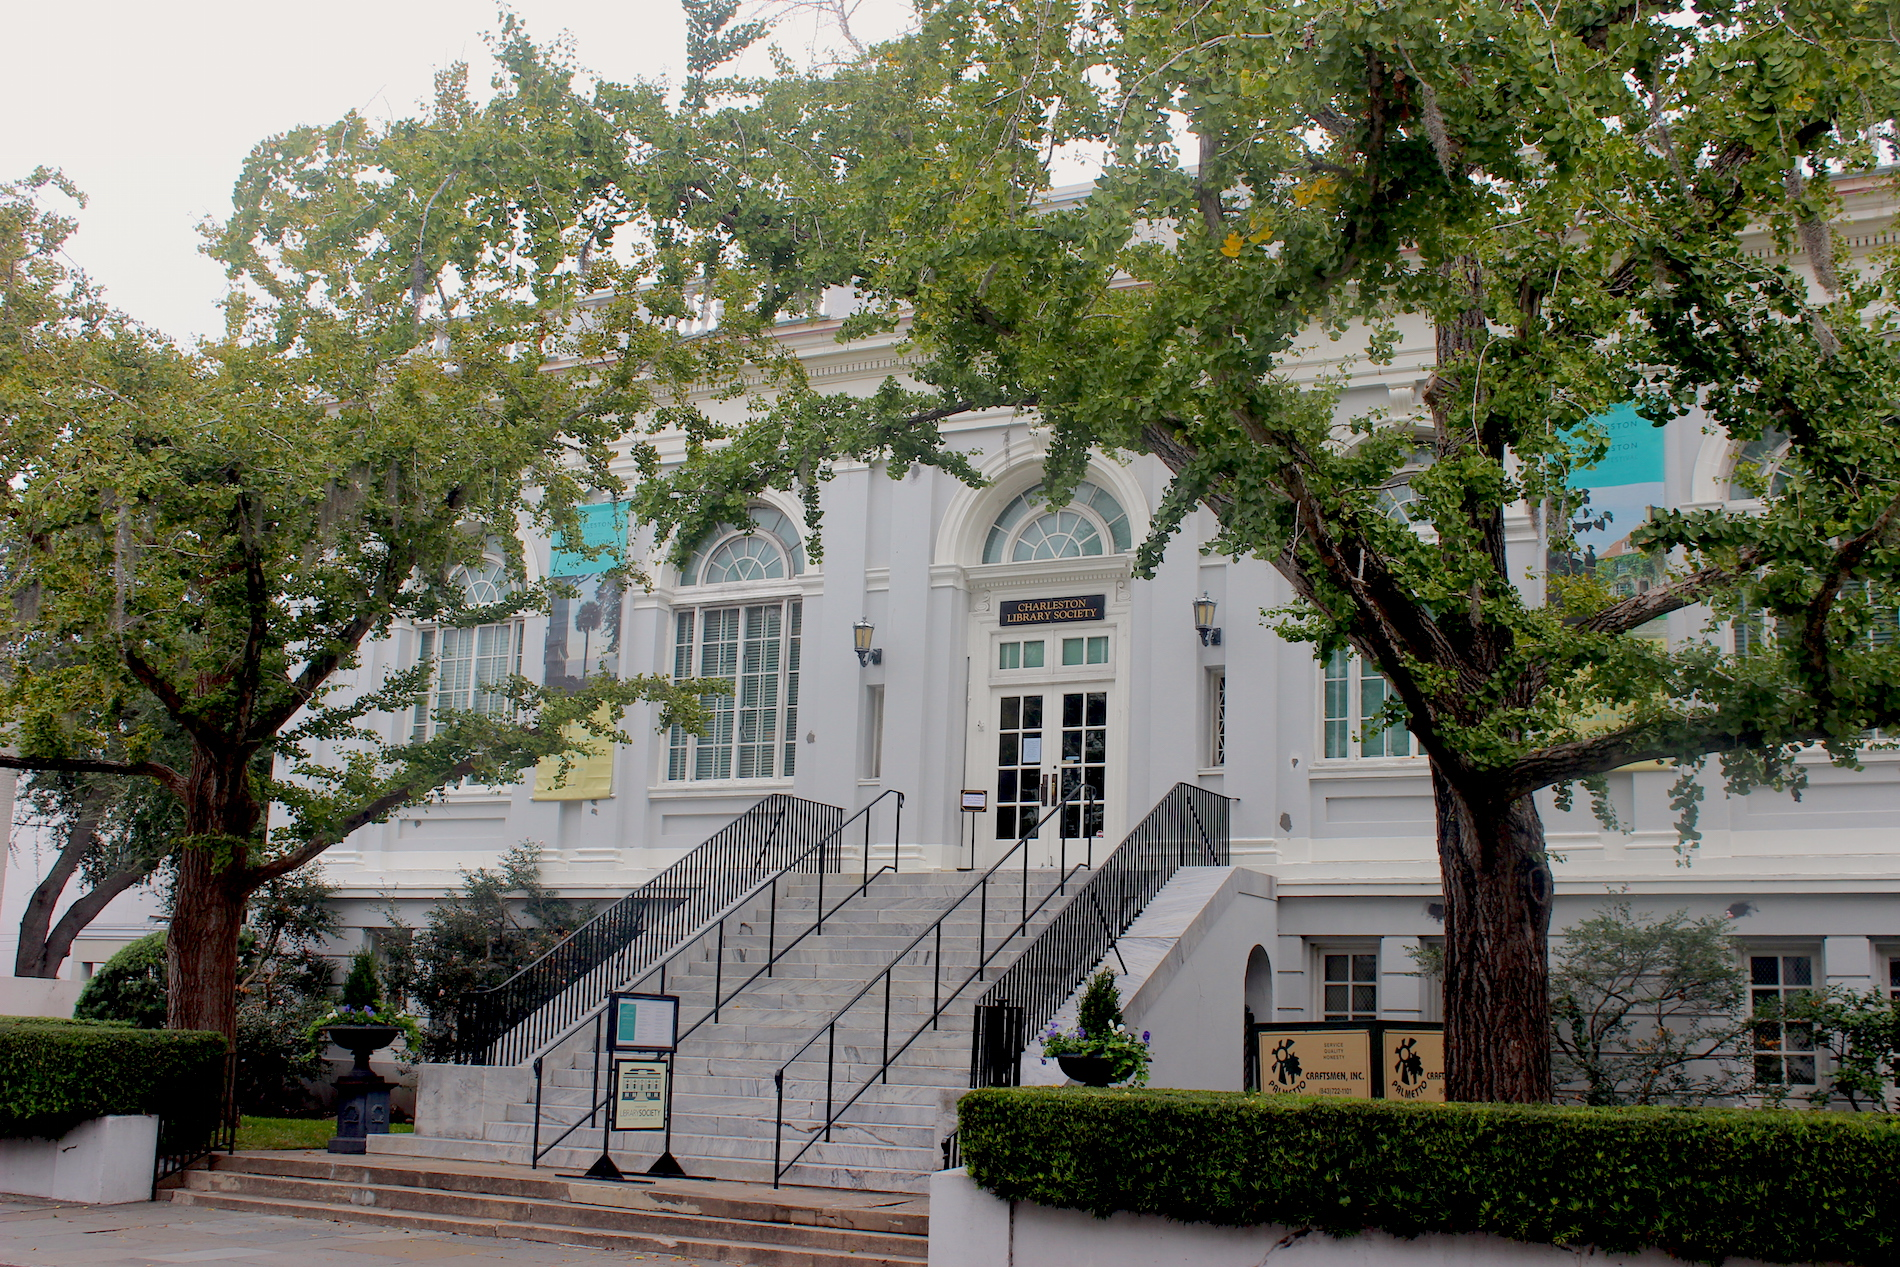 Charleston Library Society in Charleston SC by VIE Magazine